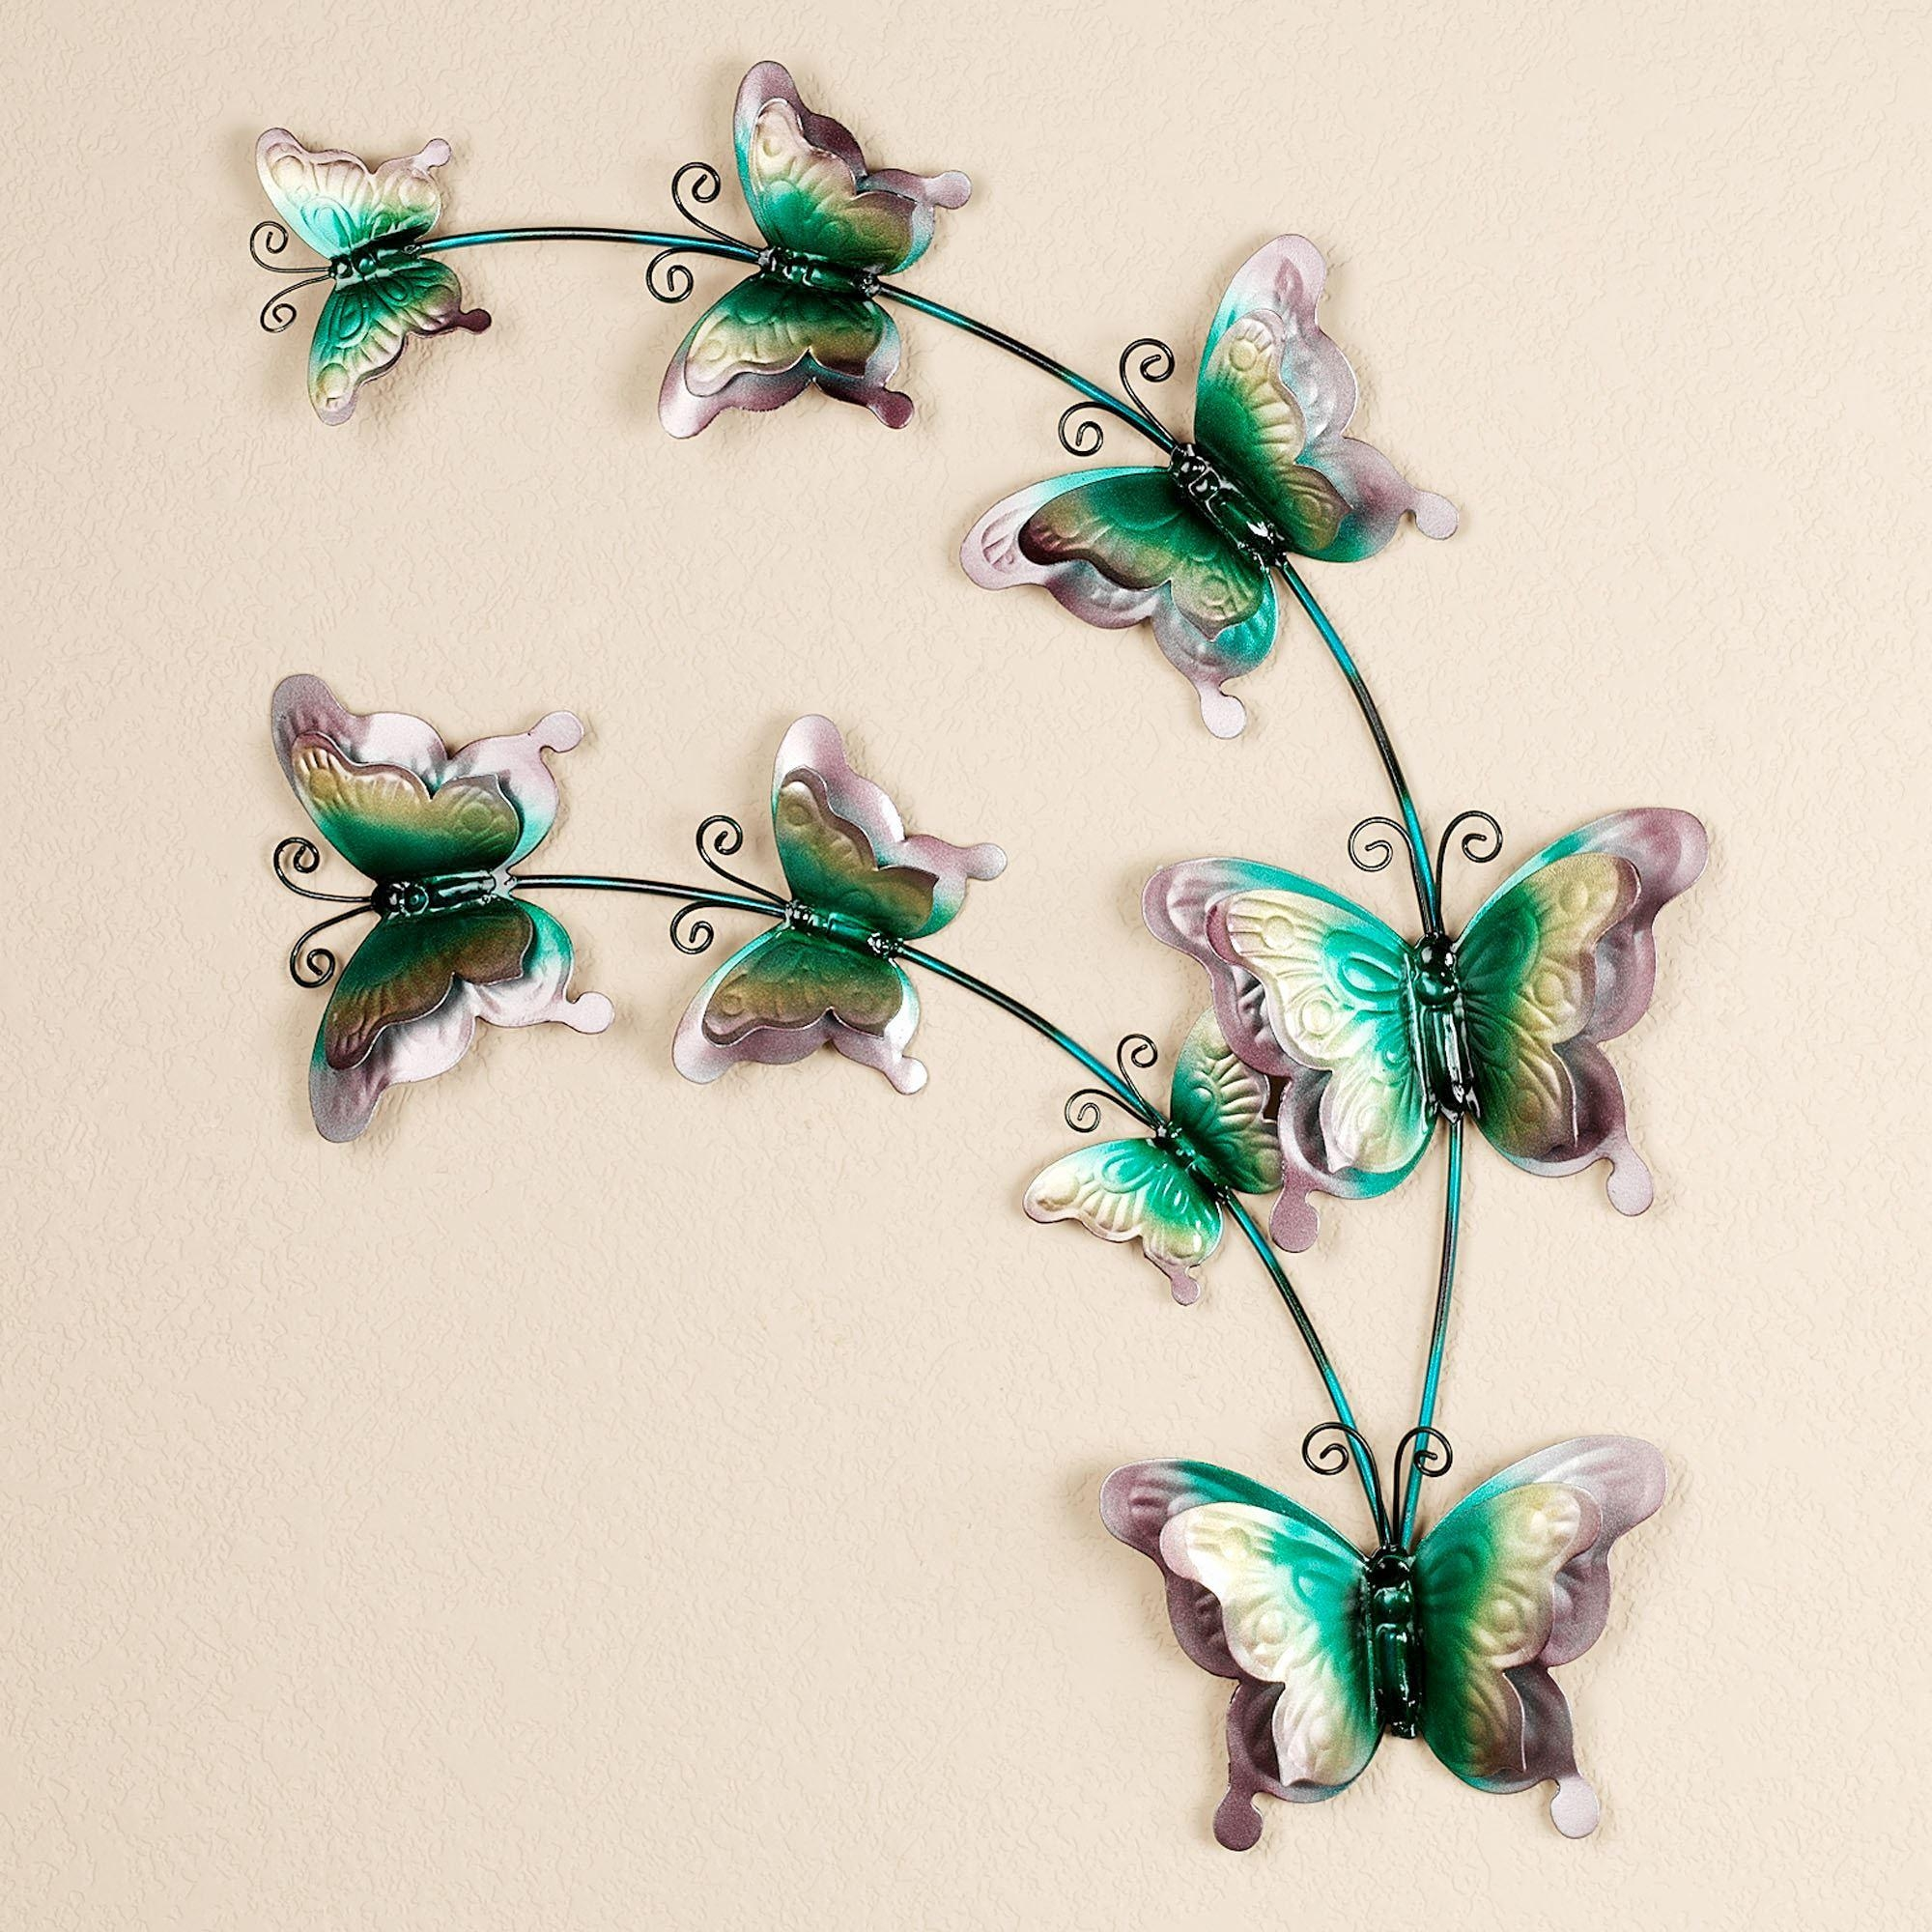 Amazing Metal Butterfly Wall Art 2000 X 2000 609 Kb Jpeg, Metal Pertaining To Metal Wall Art For Bathroom (View 13 of 20)